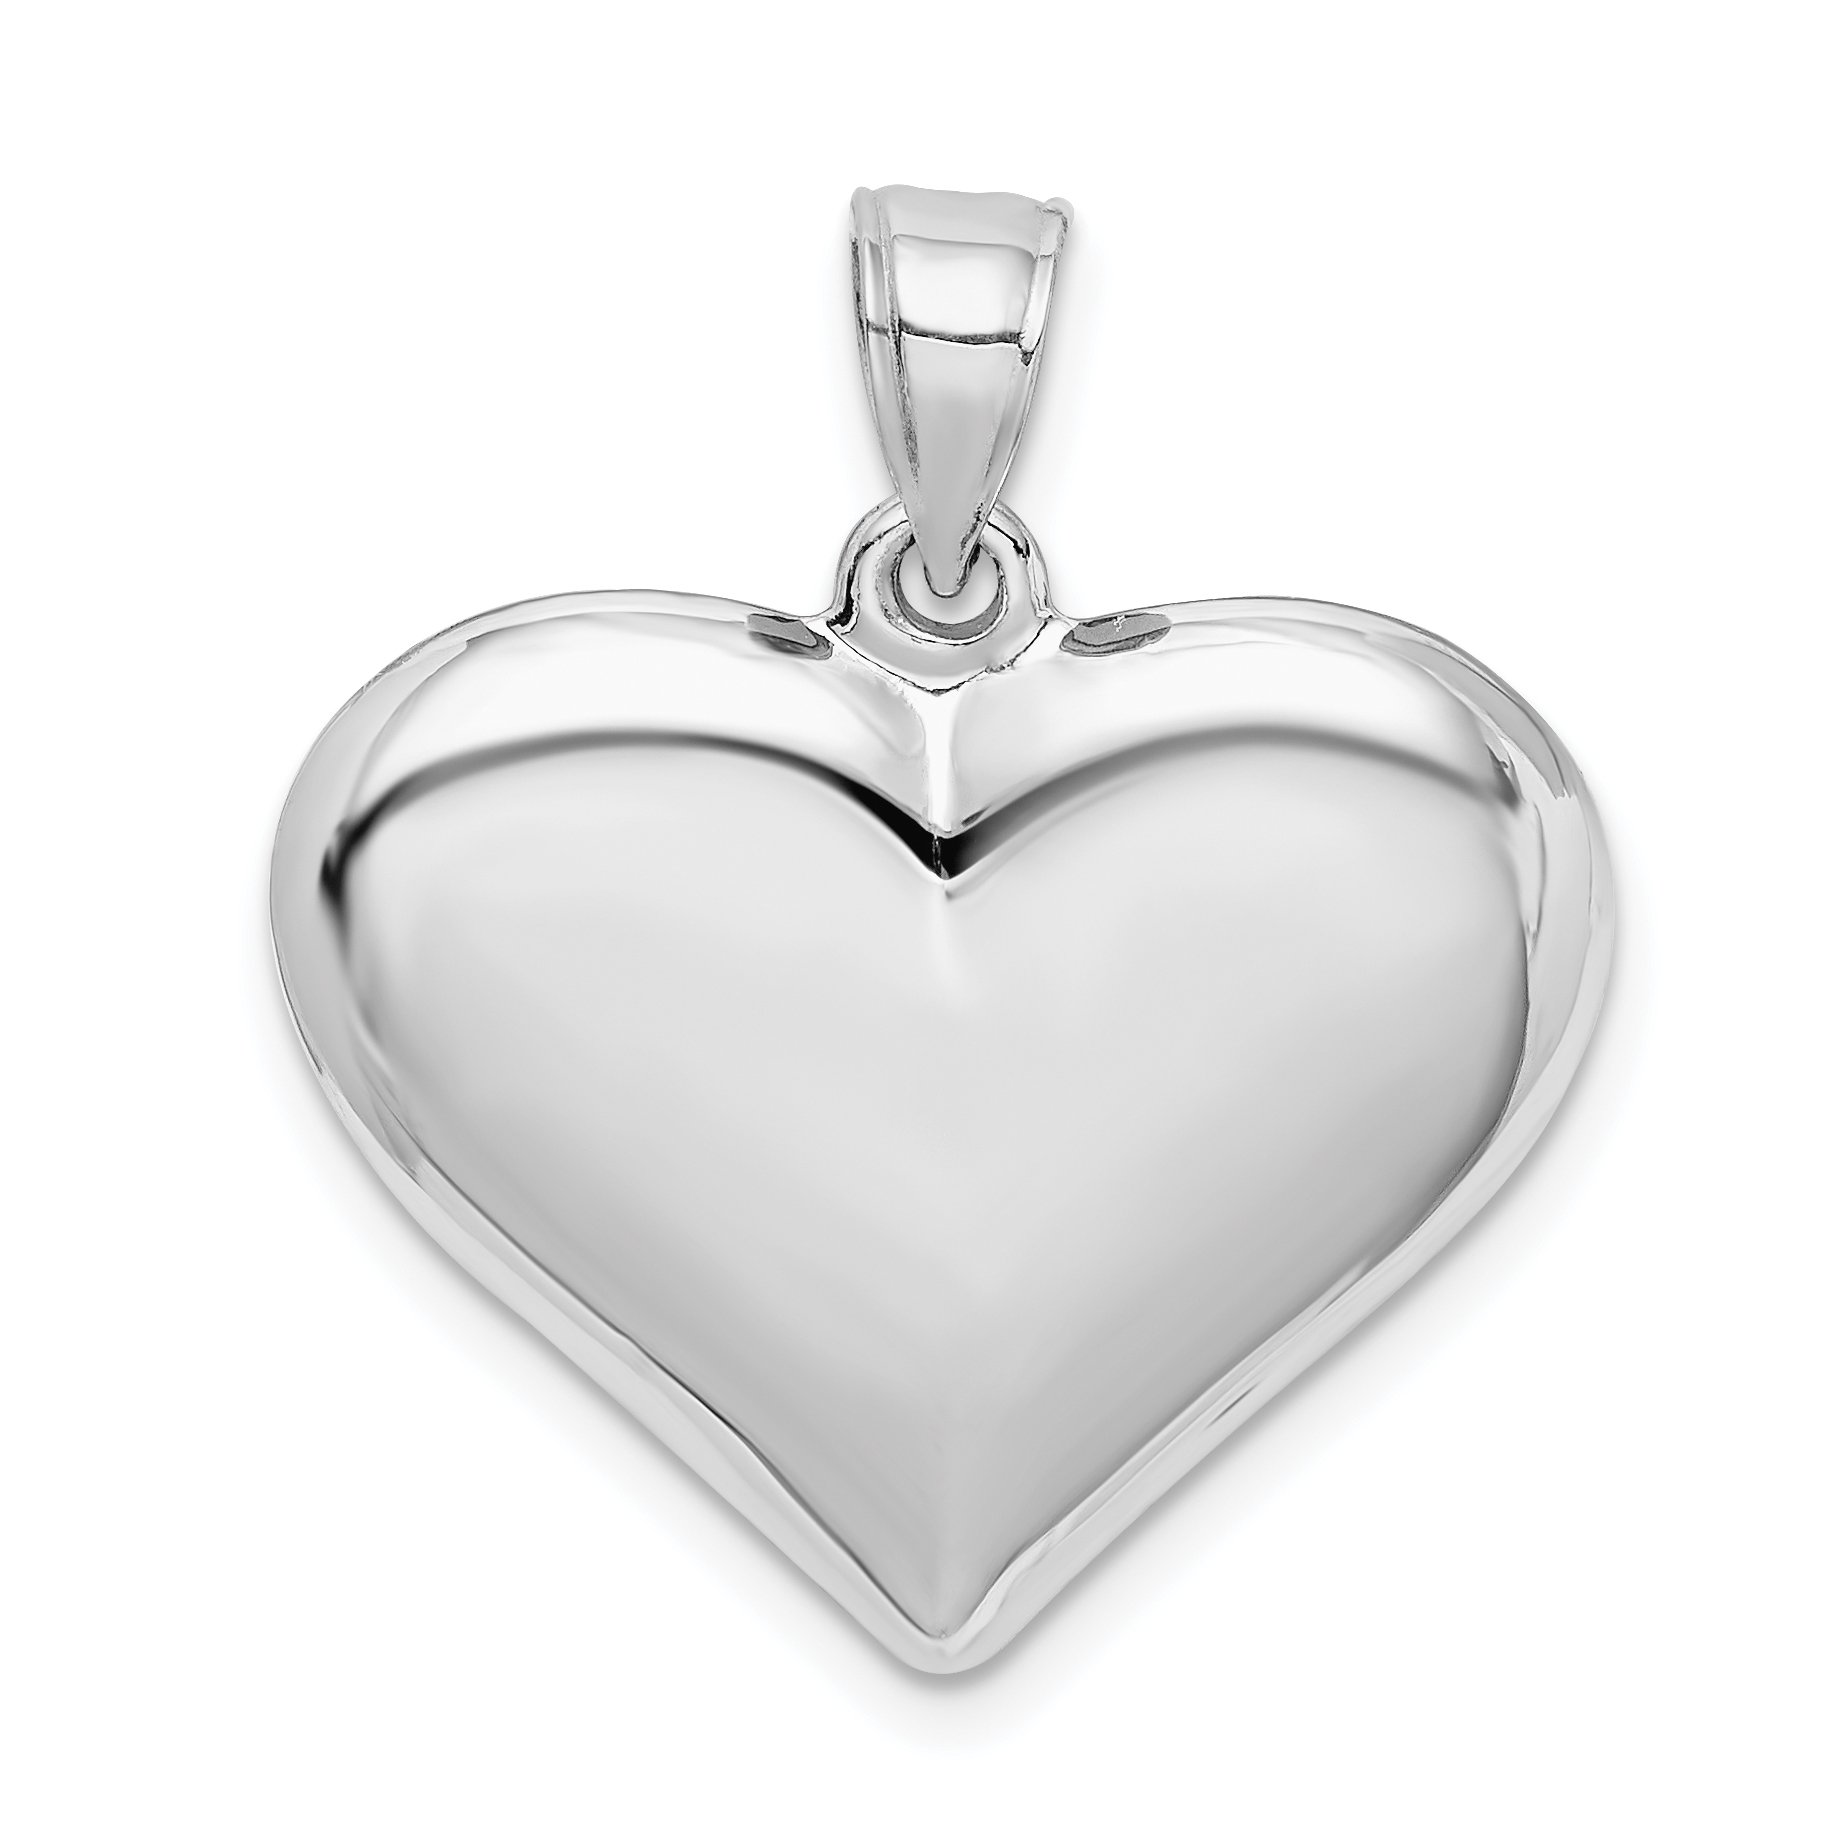 .925 Sterling Silver Heart Locket Pendant With High Polished Finish